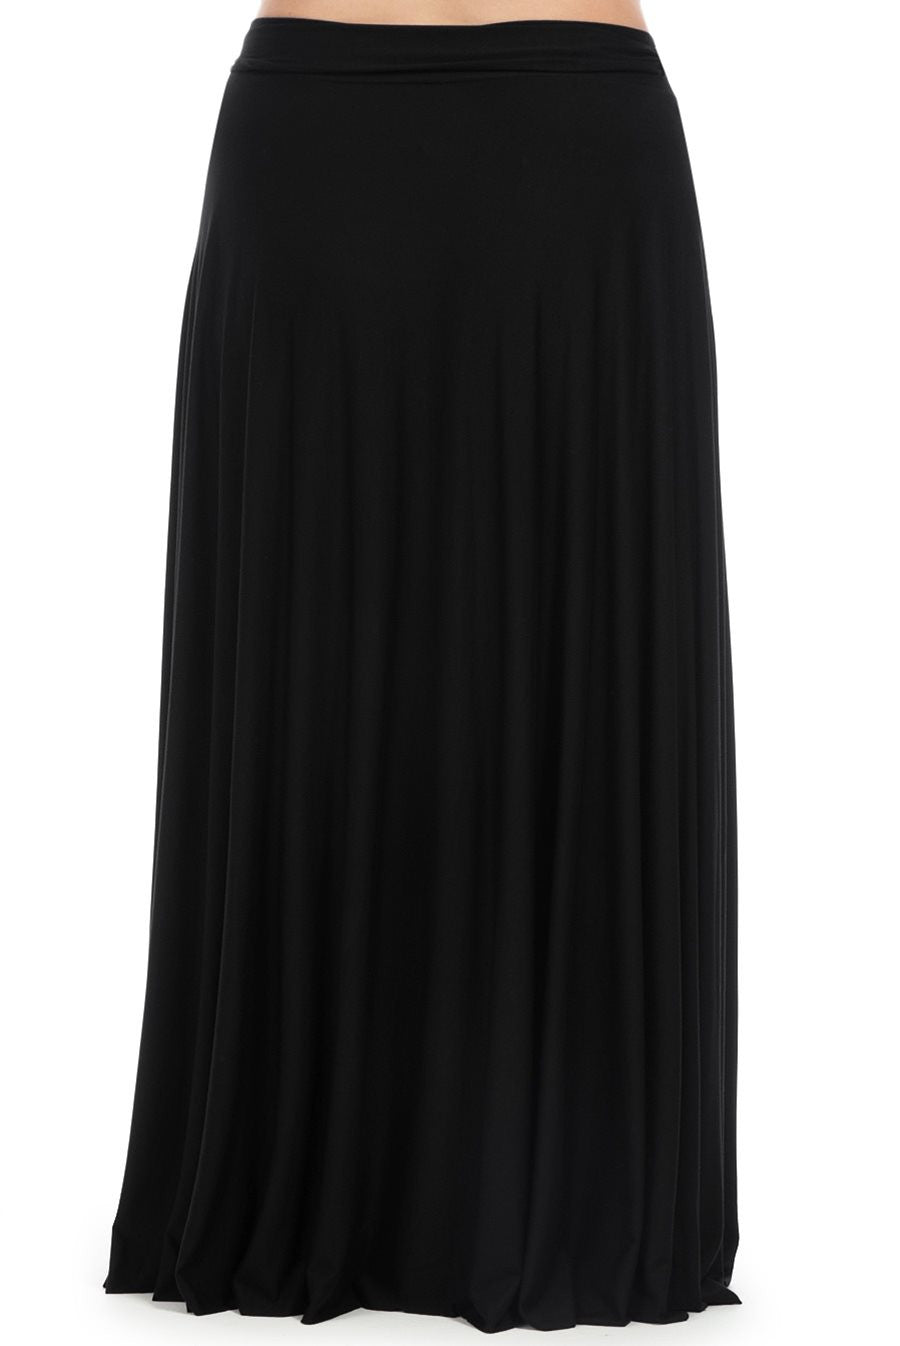 LONG WRAP SKIRT WL - BLACK